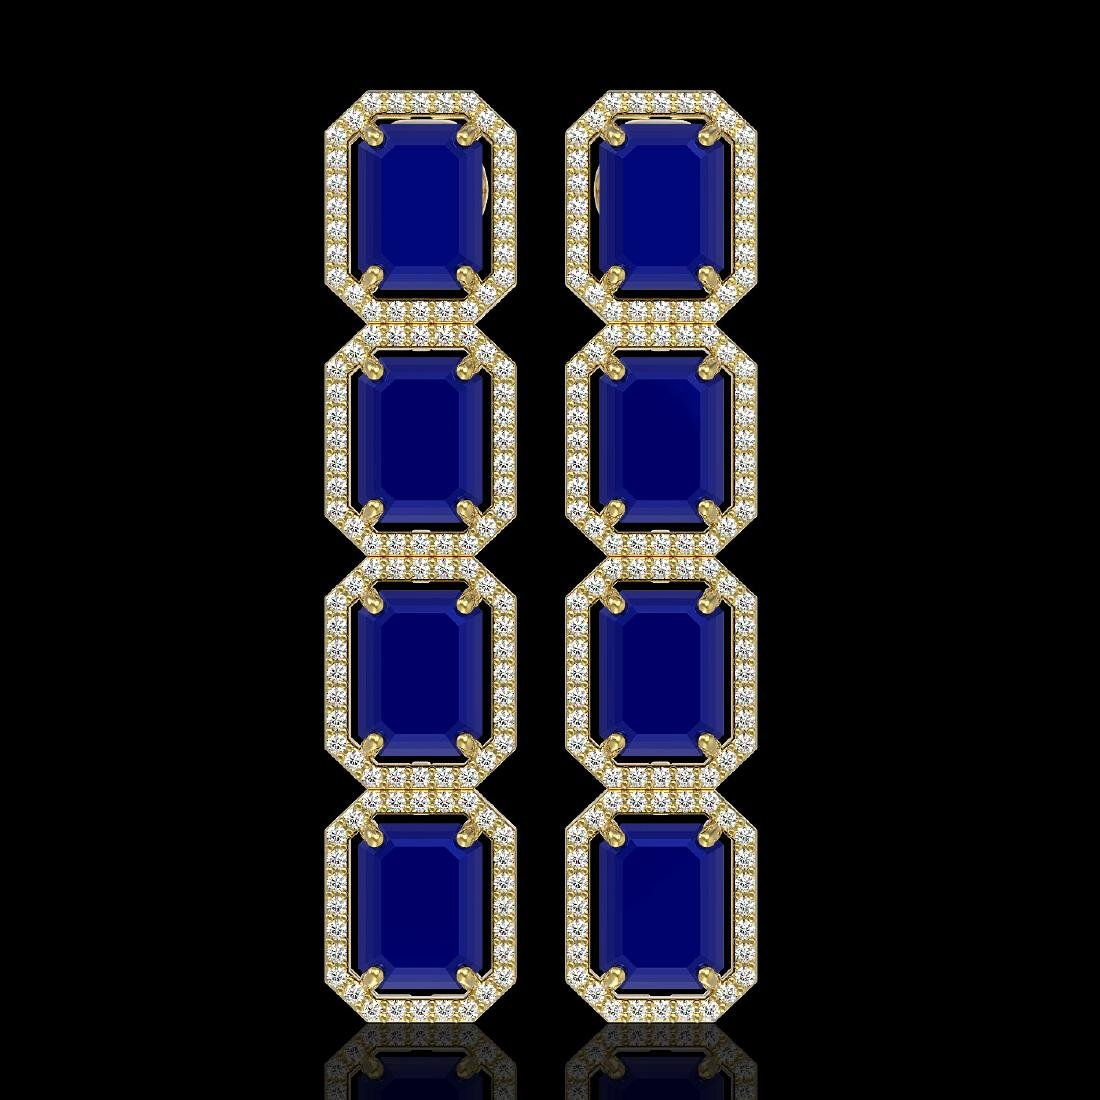 20.59 CTW Sapphire & Diamond Halo Earrings 10K Yellow